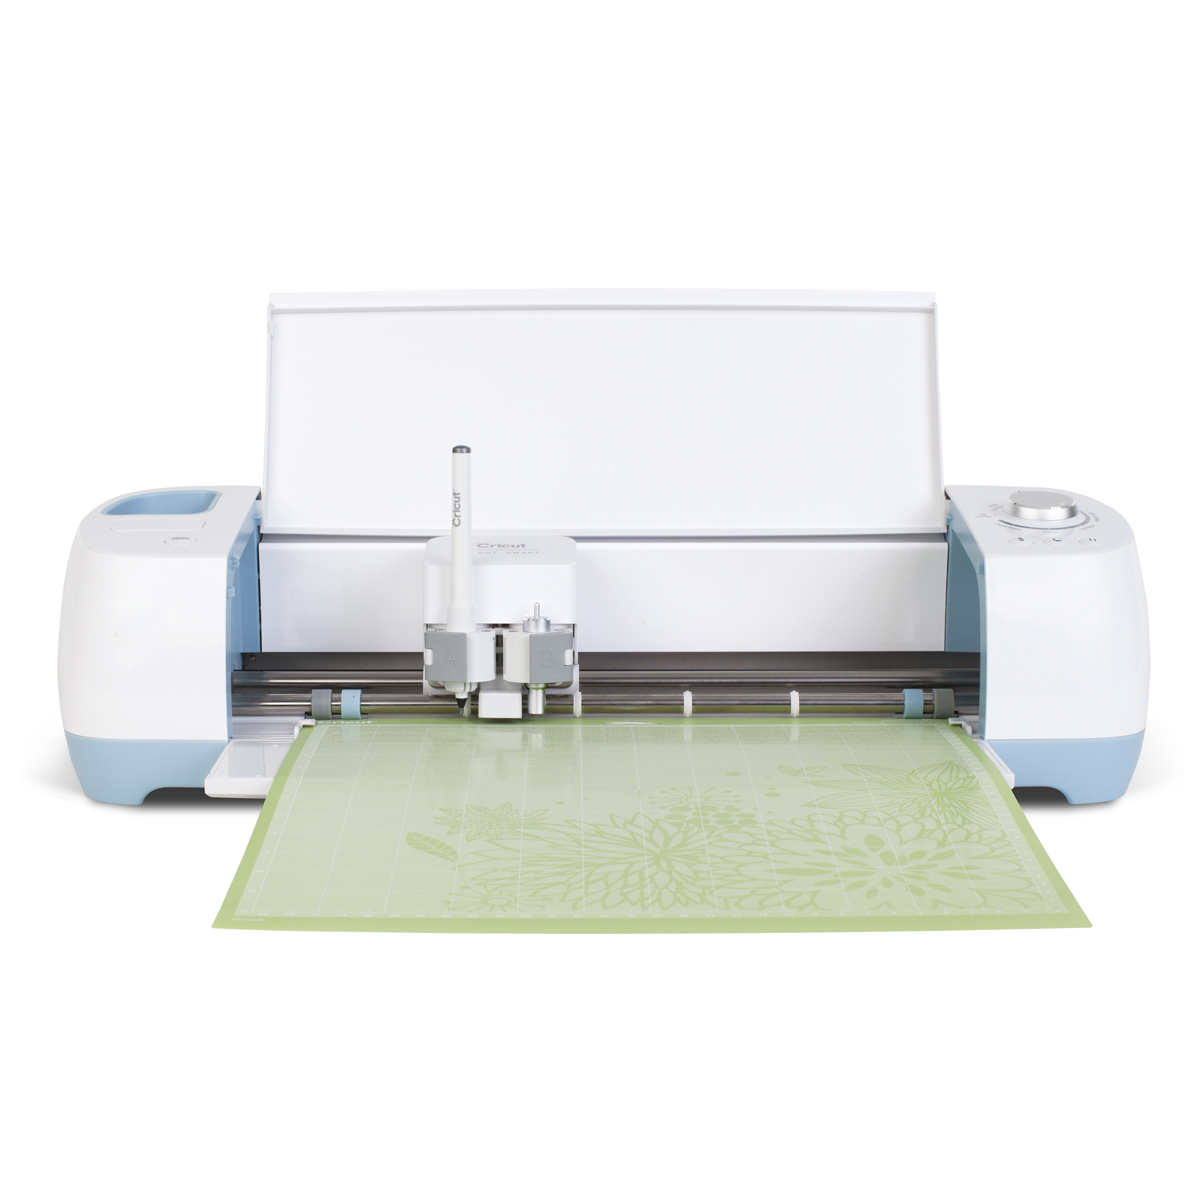 Cricut Explore Air Machine   Walmart.com